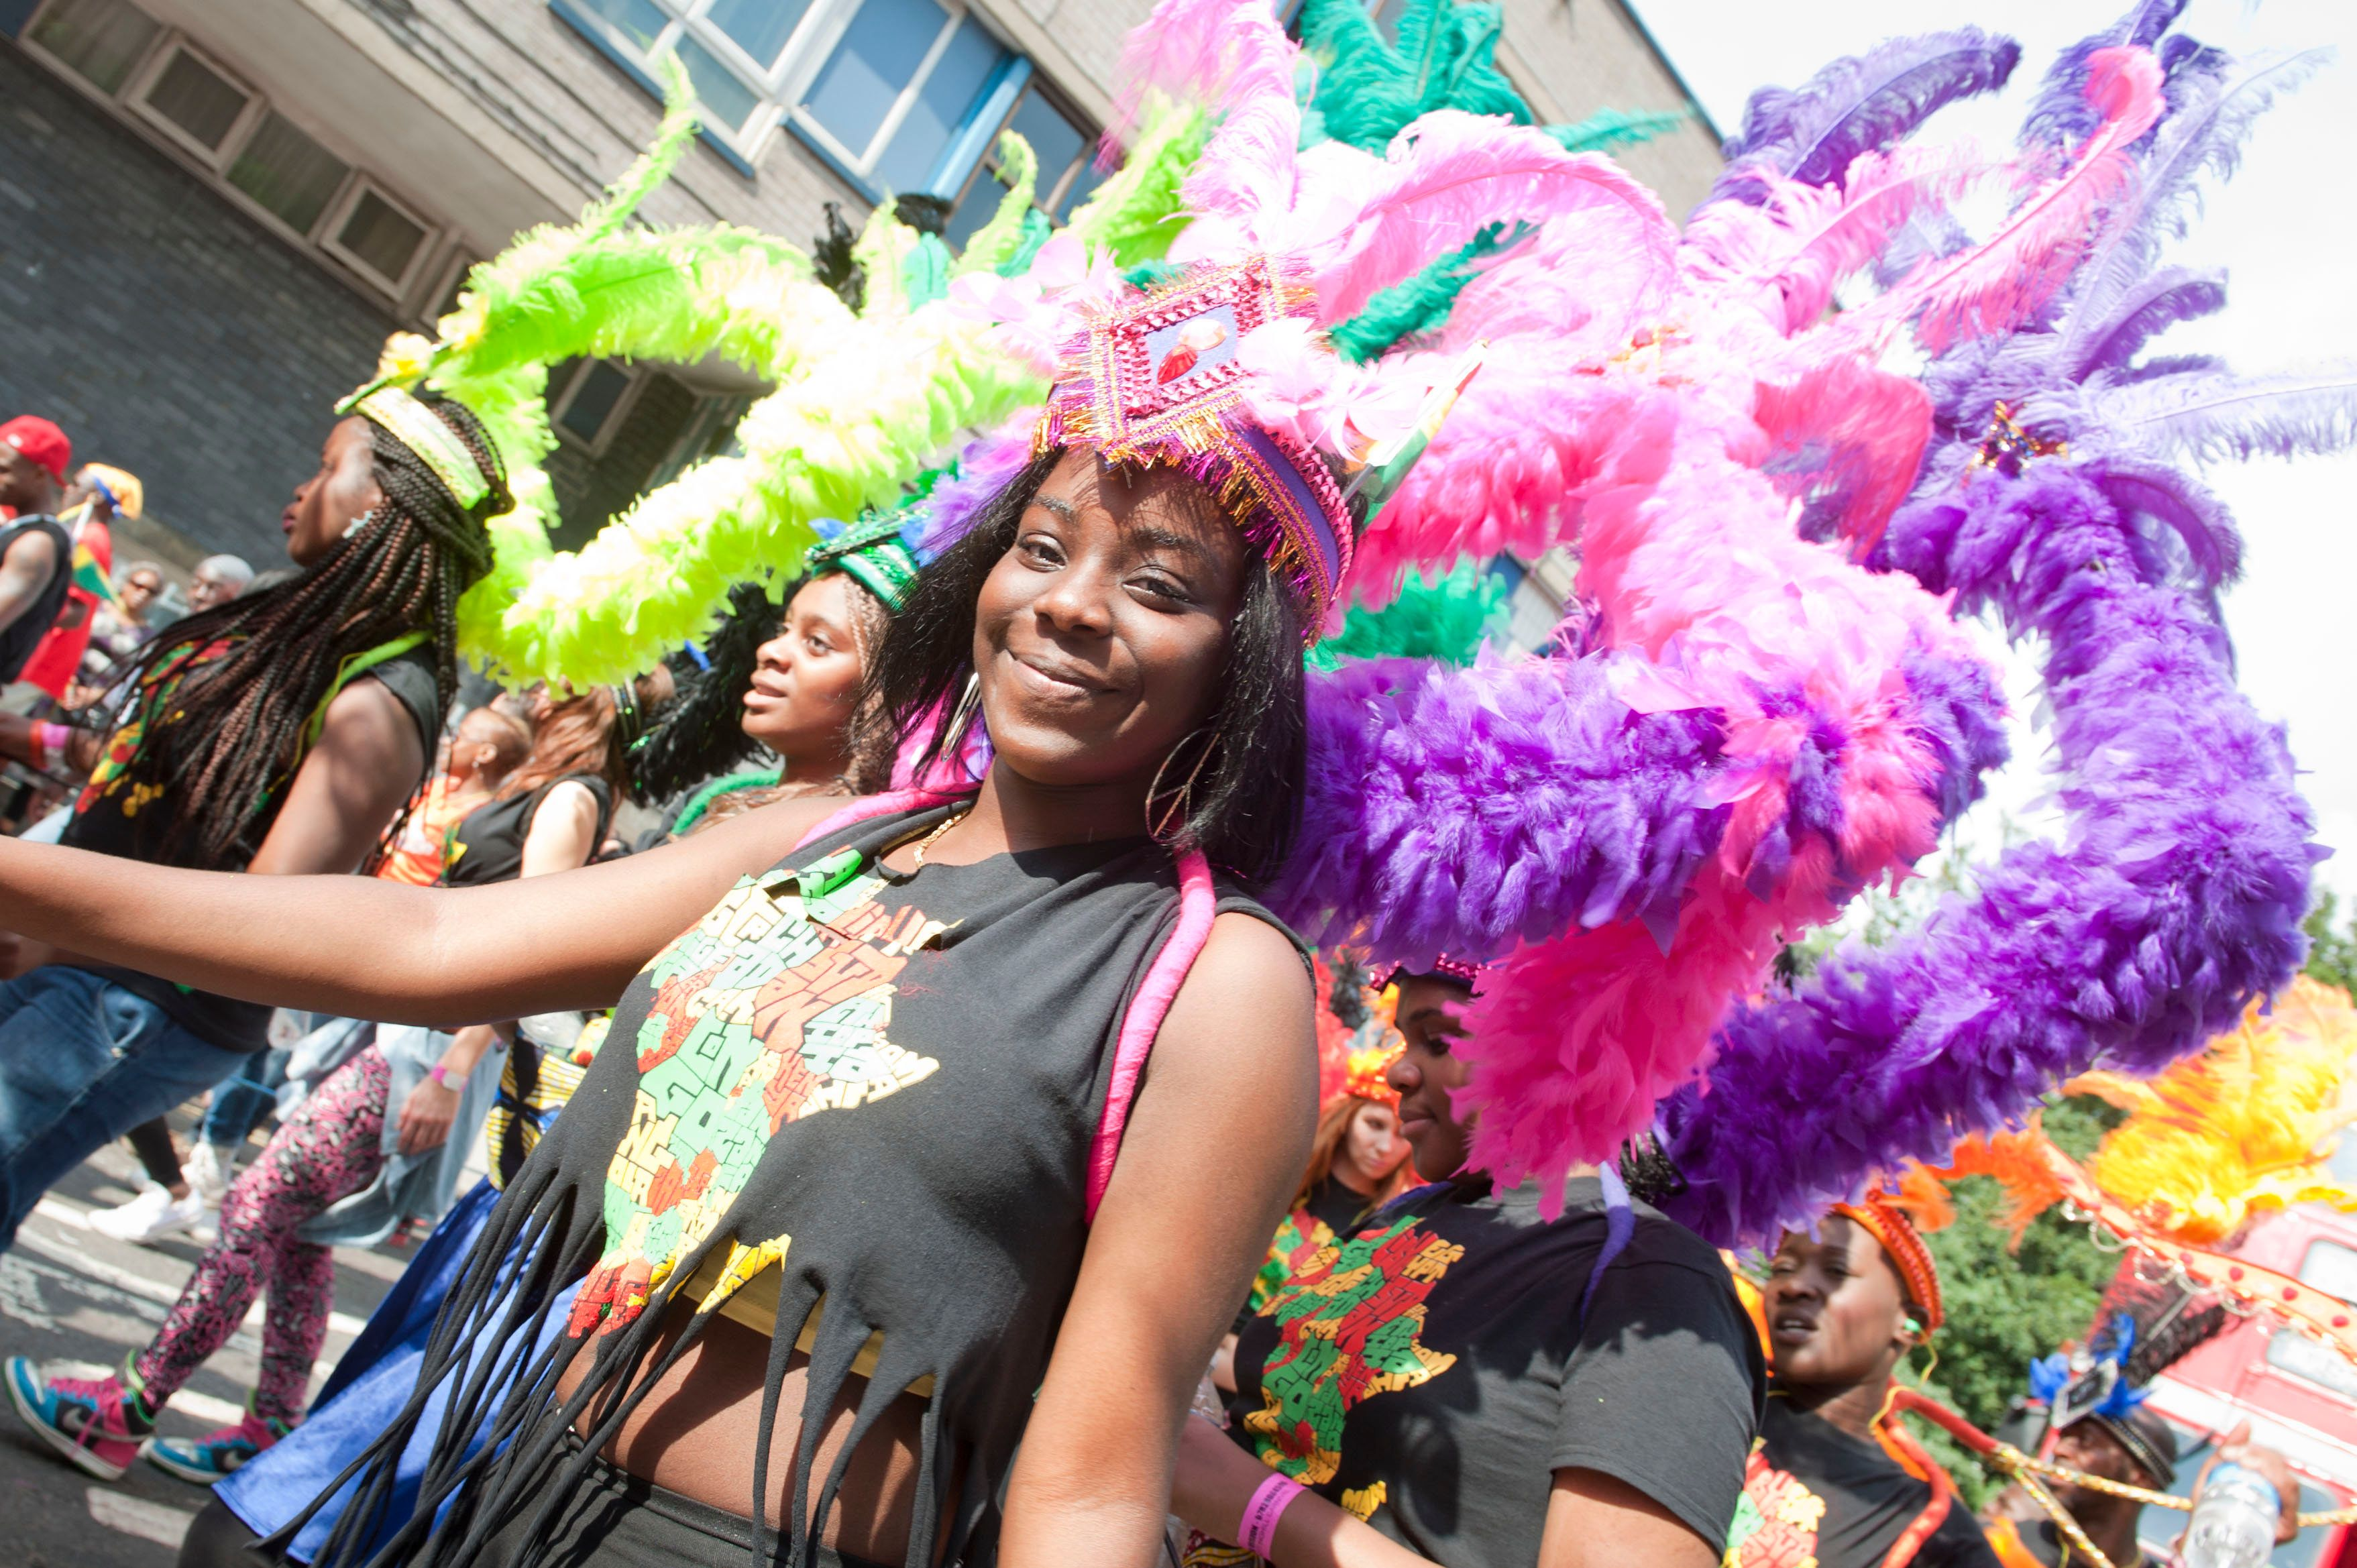 Notting Hill Carnival 2017 Dates, Route Map And How To Get